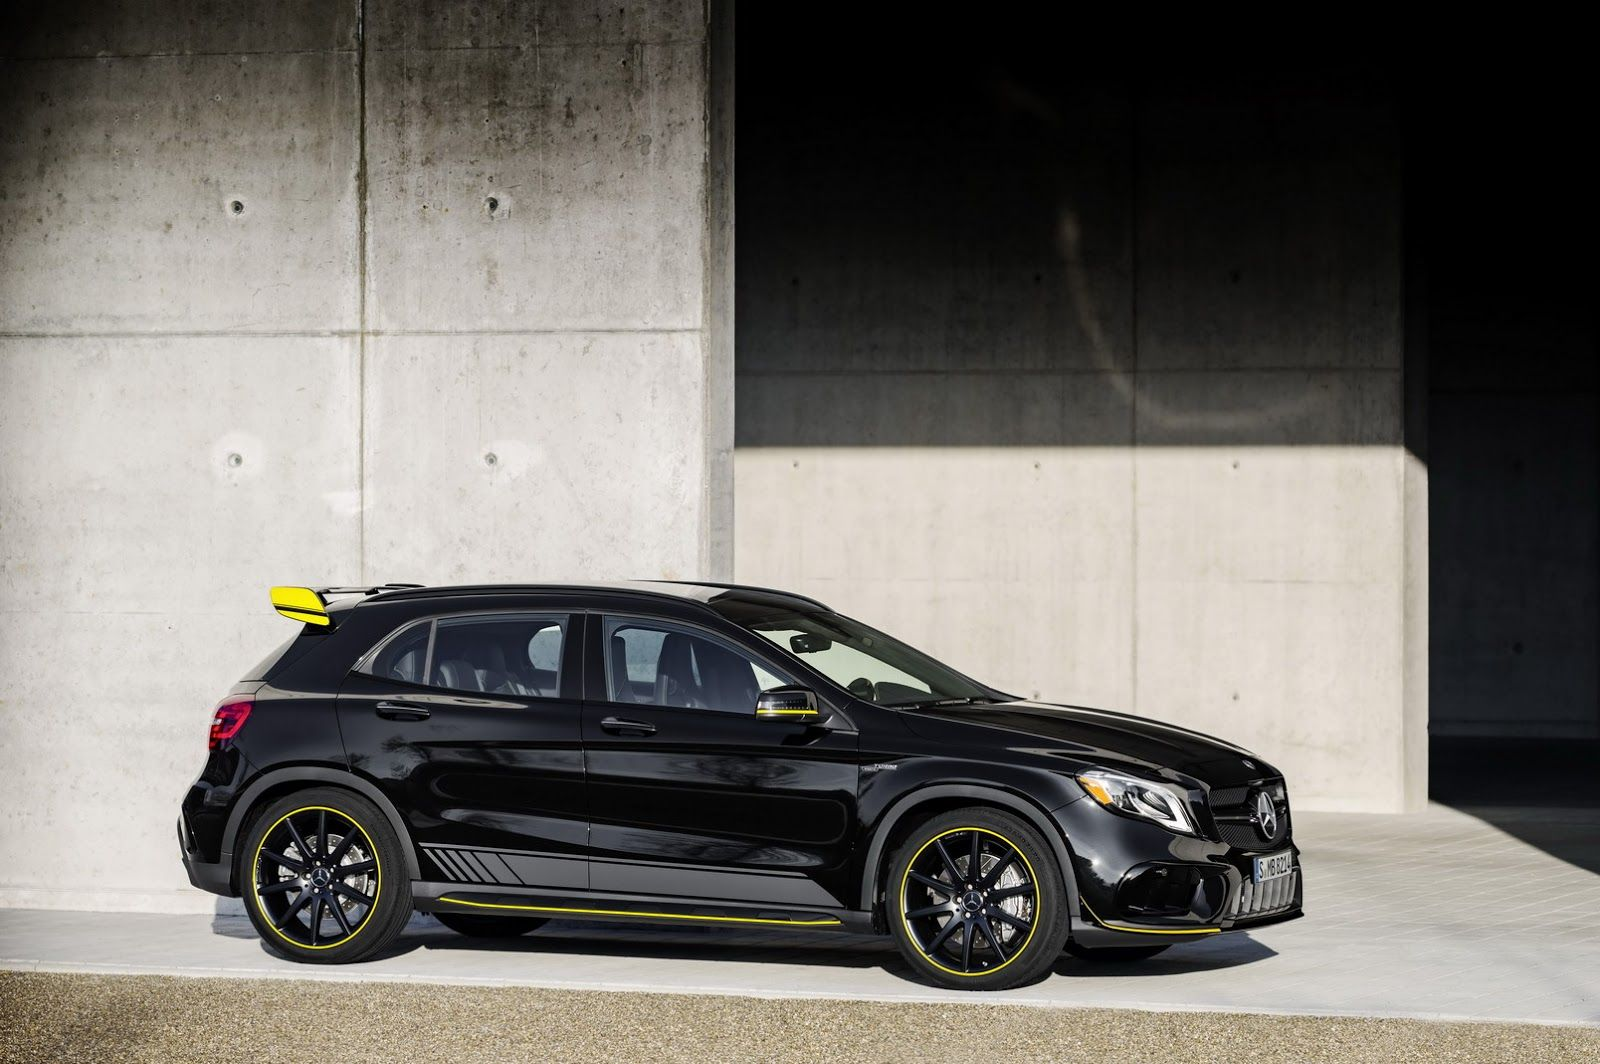 Facelifted Mercedes Benz Gla And Gla 45 Bow In Detroit With